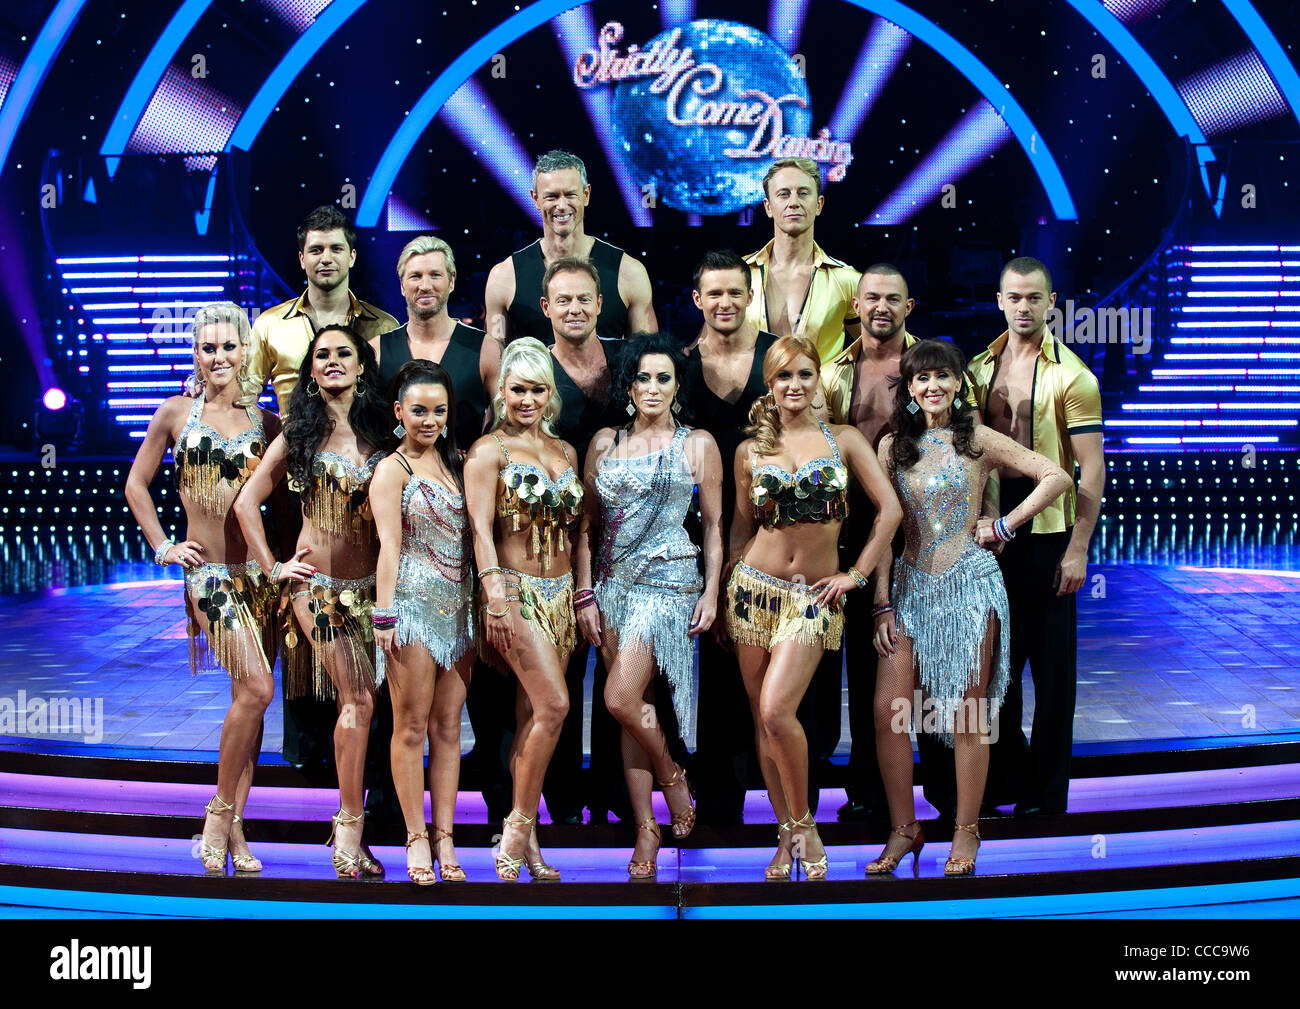 All of the Girls and Boys at the Strictly Come Dancing photo shoot at the national indoor arena in Birmingham. 19th - Stock Image